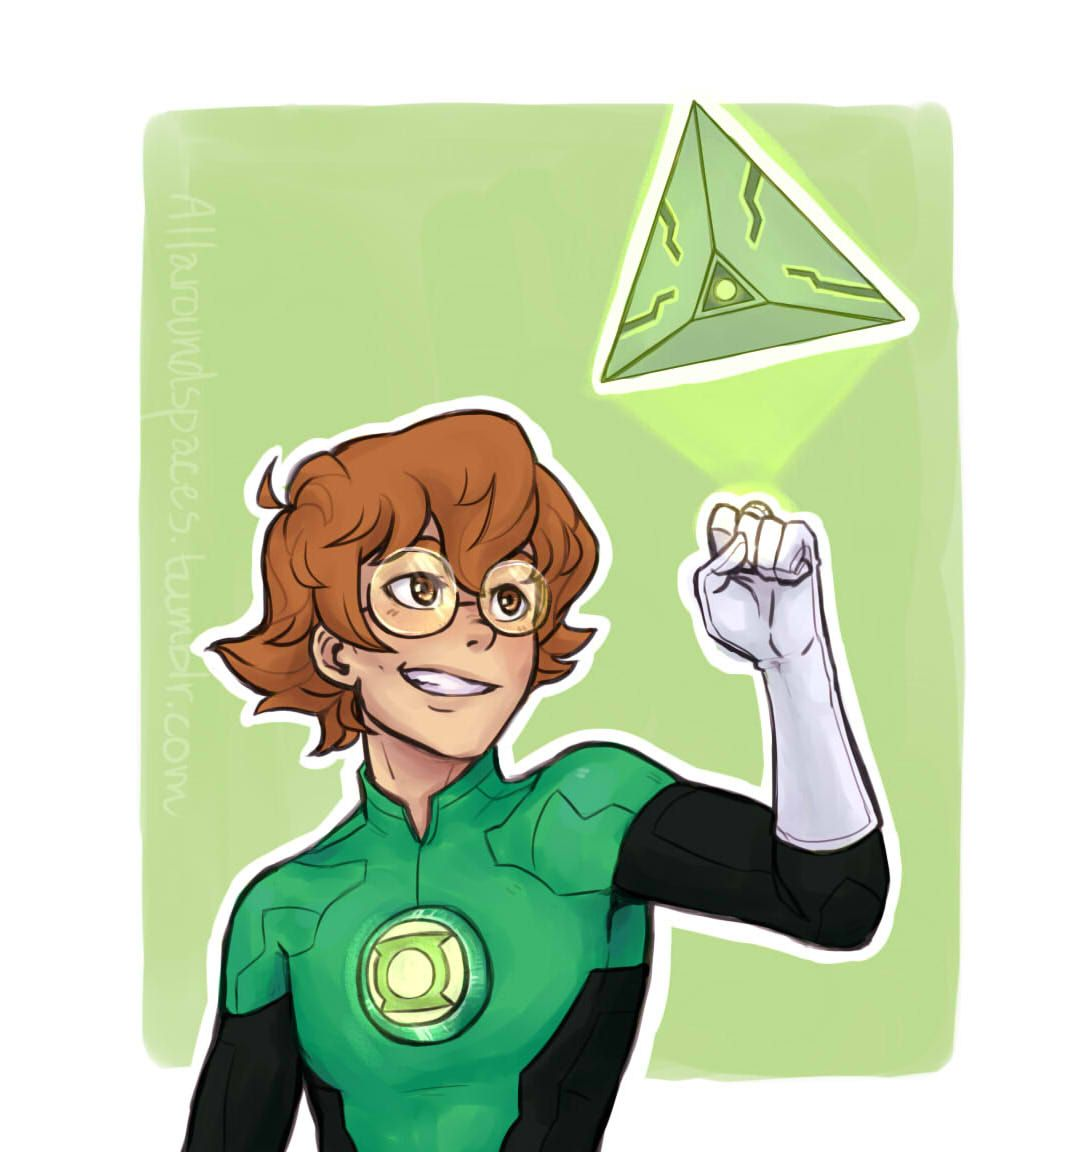 Pidge as Green Lantern ! Justice League crossover (I used a another brush this time, so it might look a little different from the others so far) Allura - Shiro - Hunk